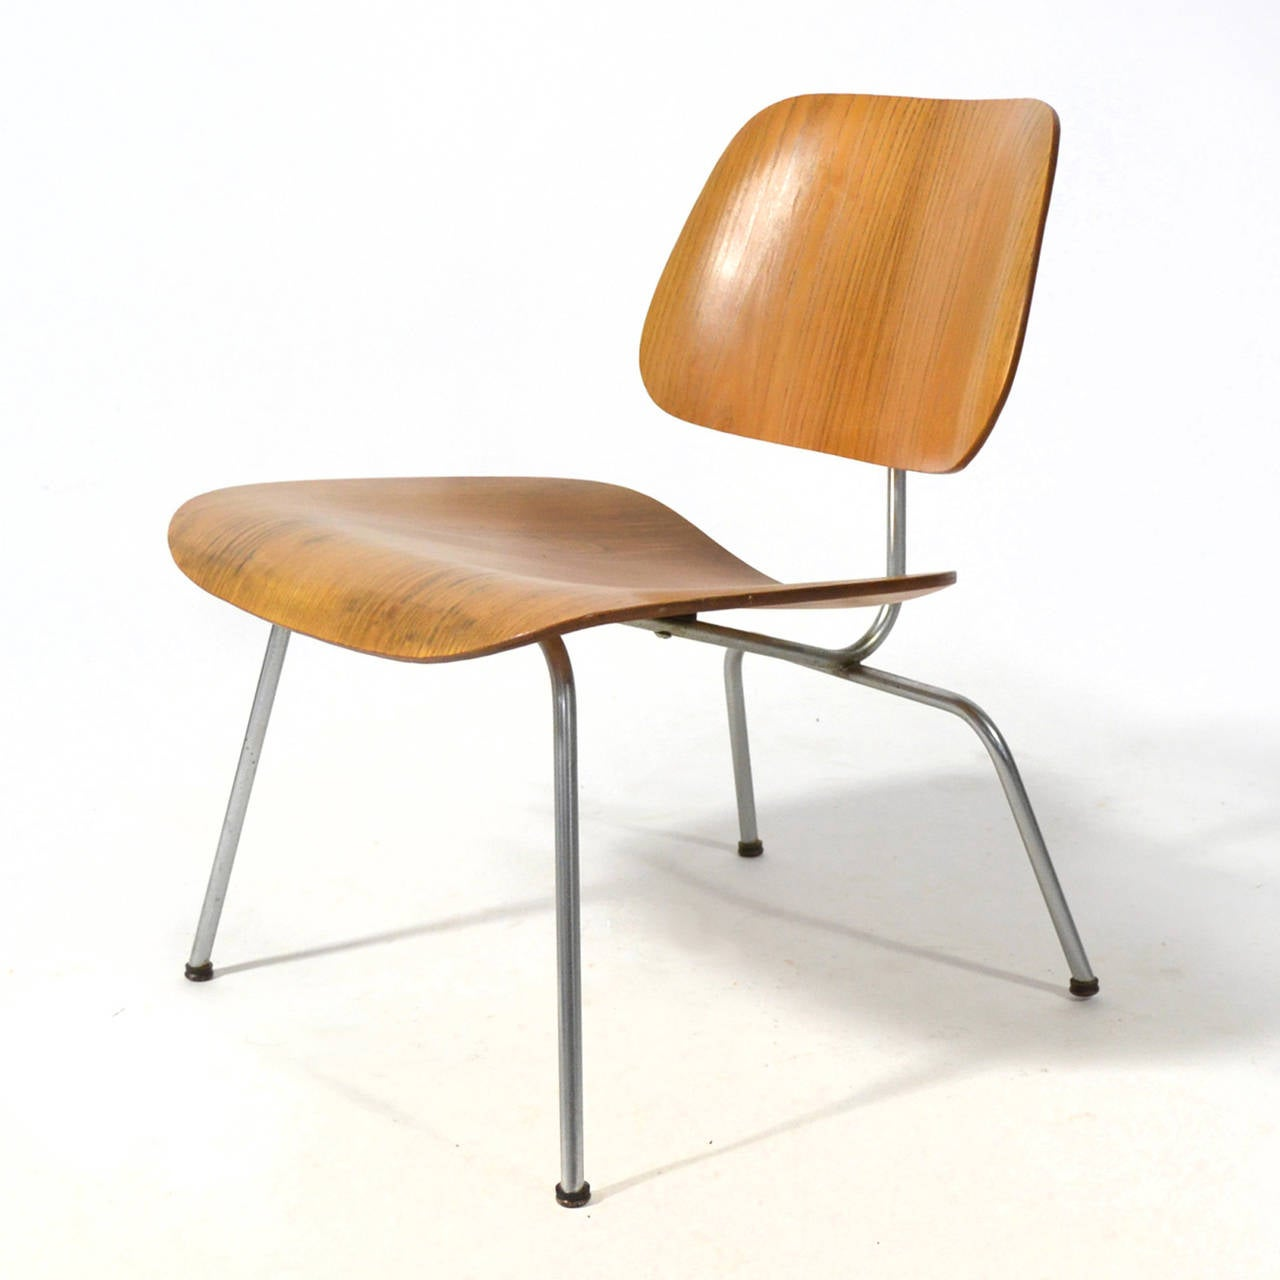 Bent plywood chair eames - Eames Lcm Lounge Chair By Herman Miller With Developmental Mounts 2